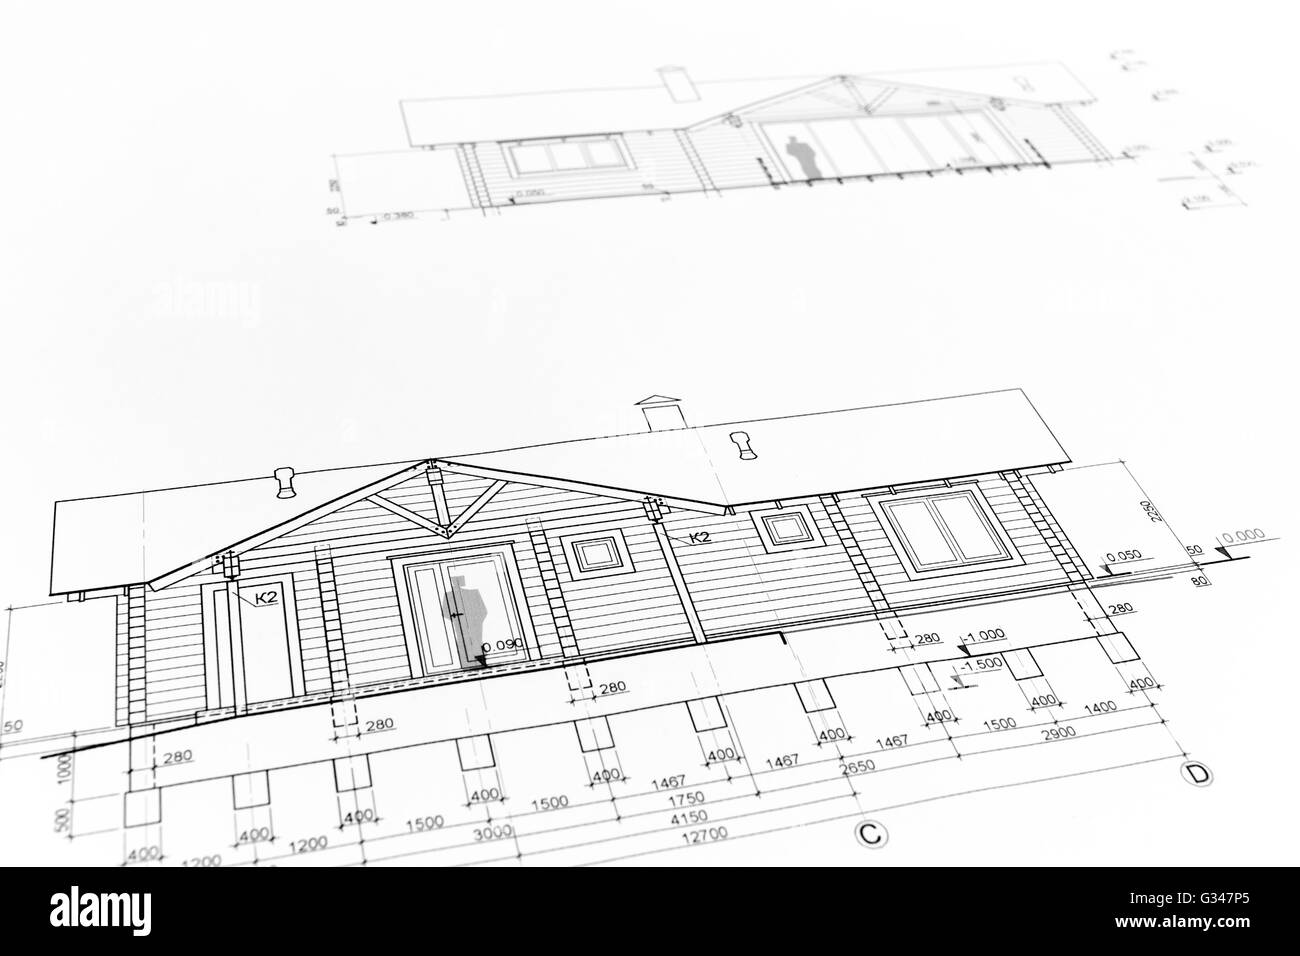 House plan blueprints for new housing development architectural house plan blueprints for new housing development architectural background malvernweather Images